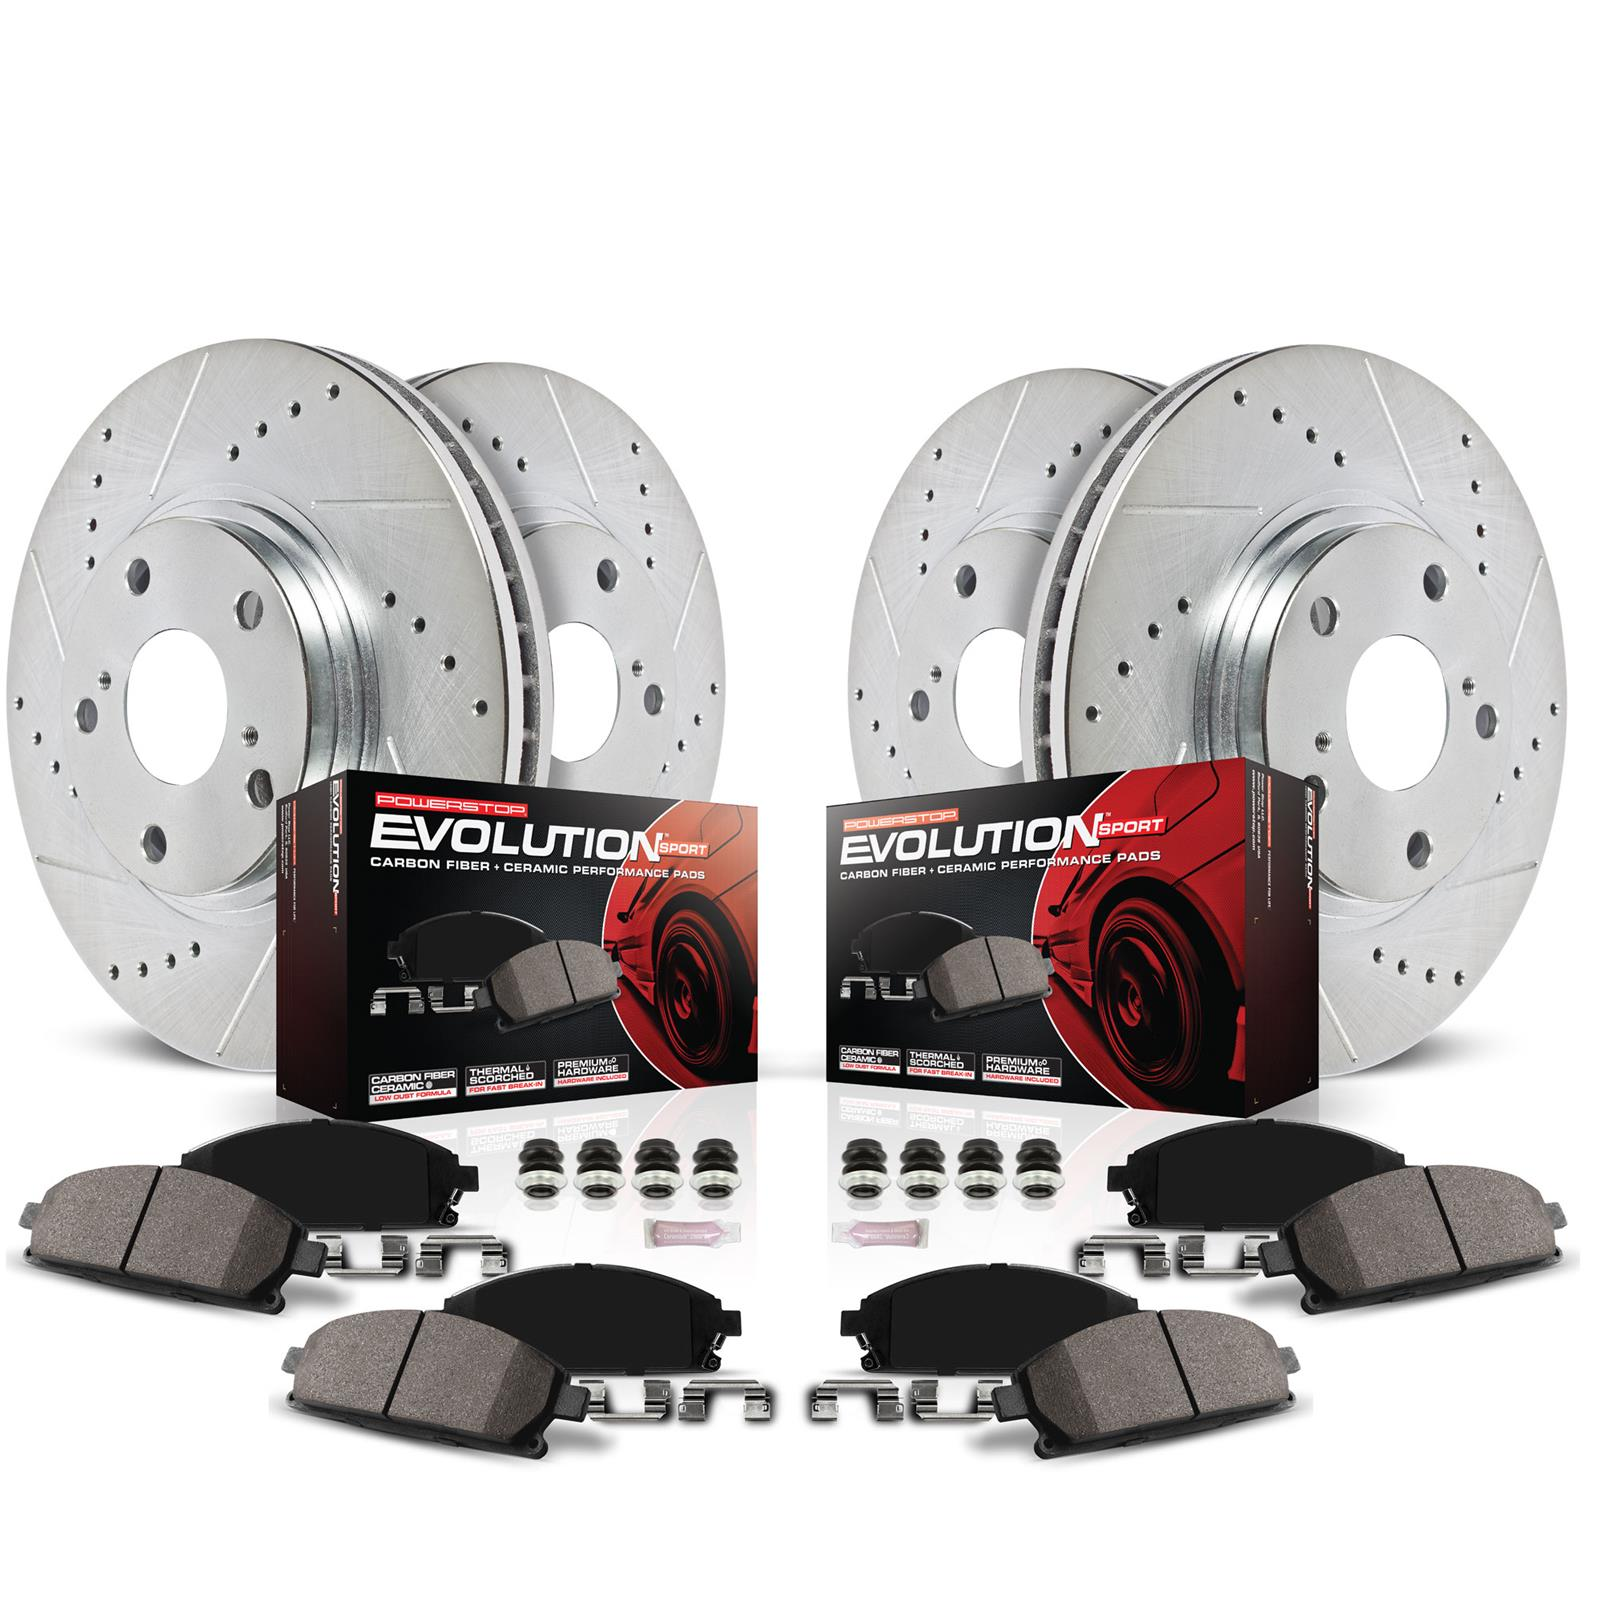 Power Stop Z23 Evolution Sport Brake Upgrade Kits K2822 - Free Shipping on  Orders Over $49 at Summit Racing